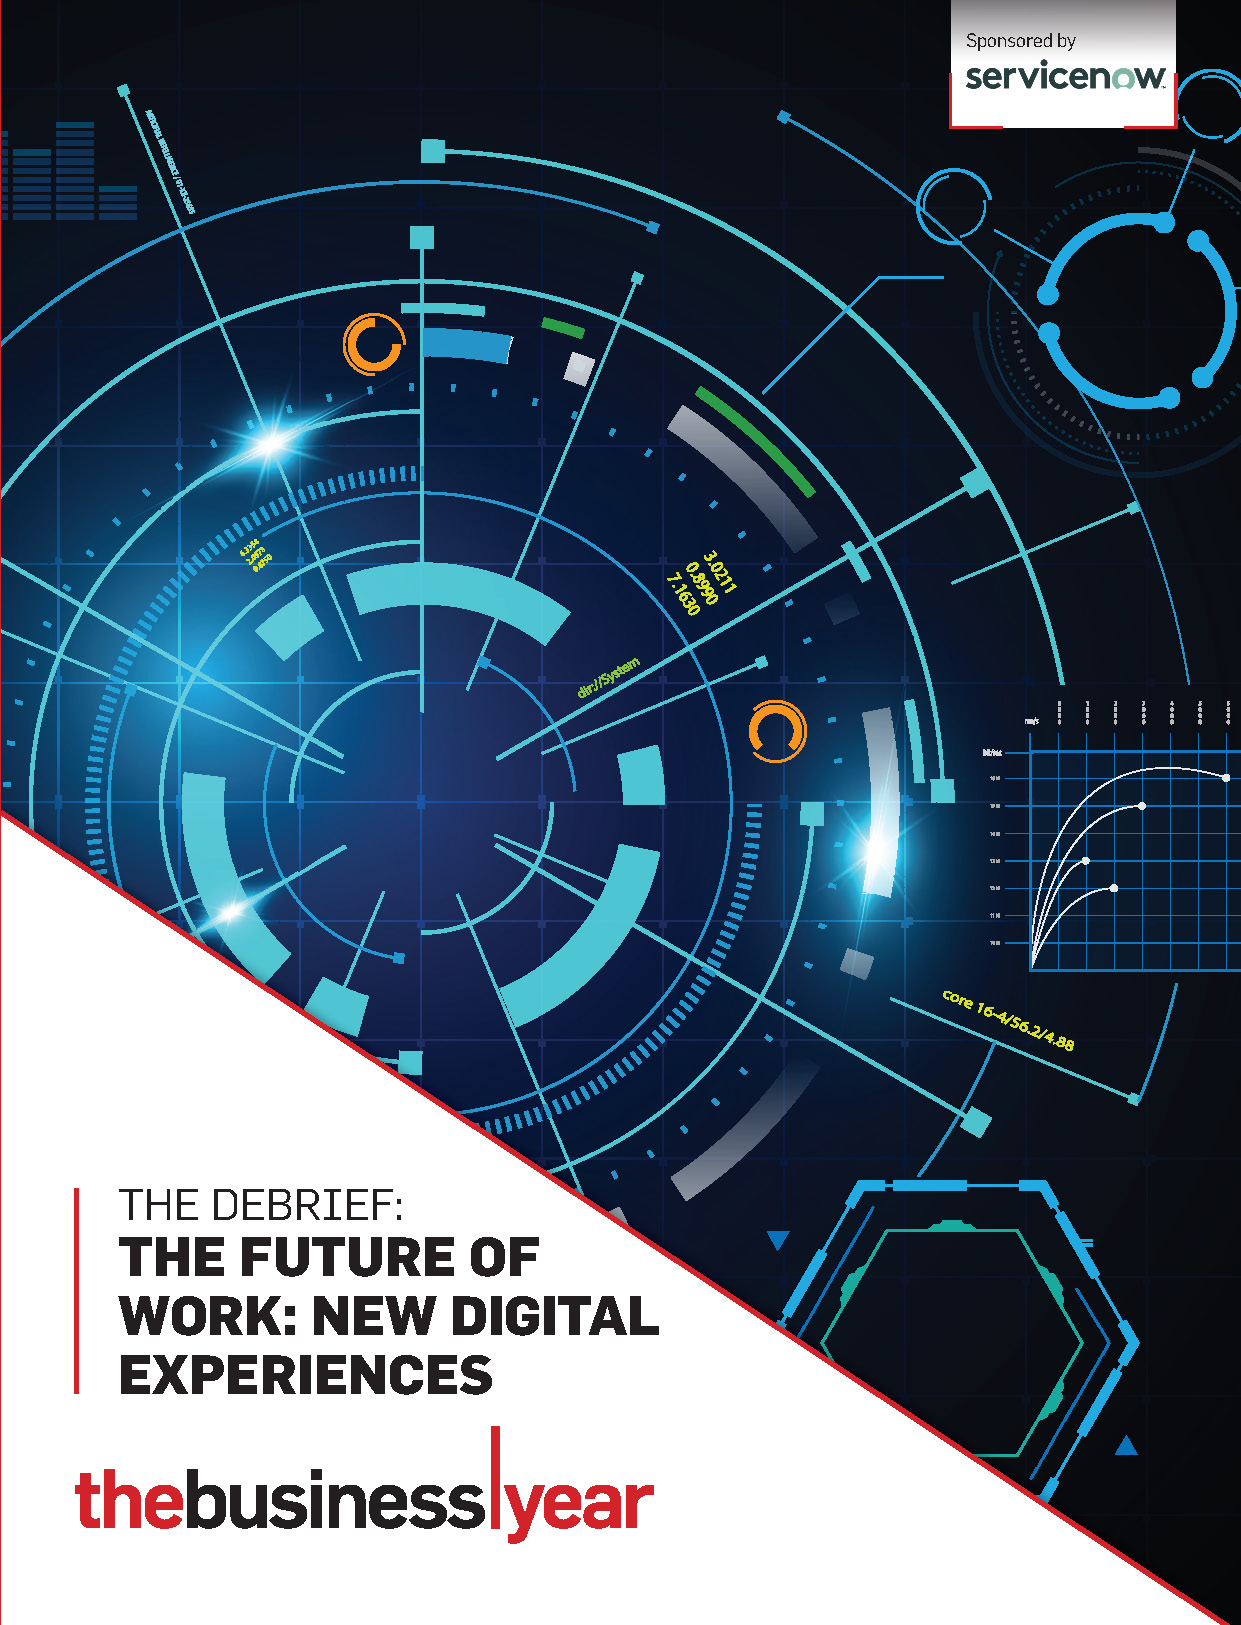 The Debrief: The Future of Work: New Digital Experiences